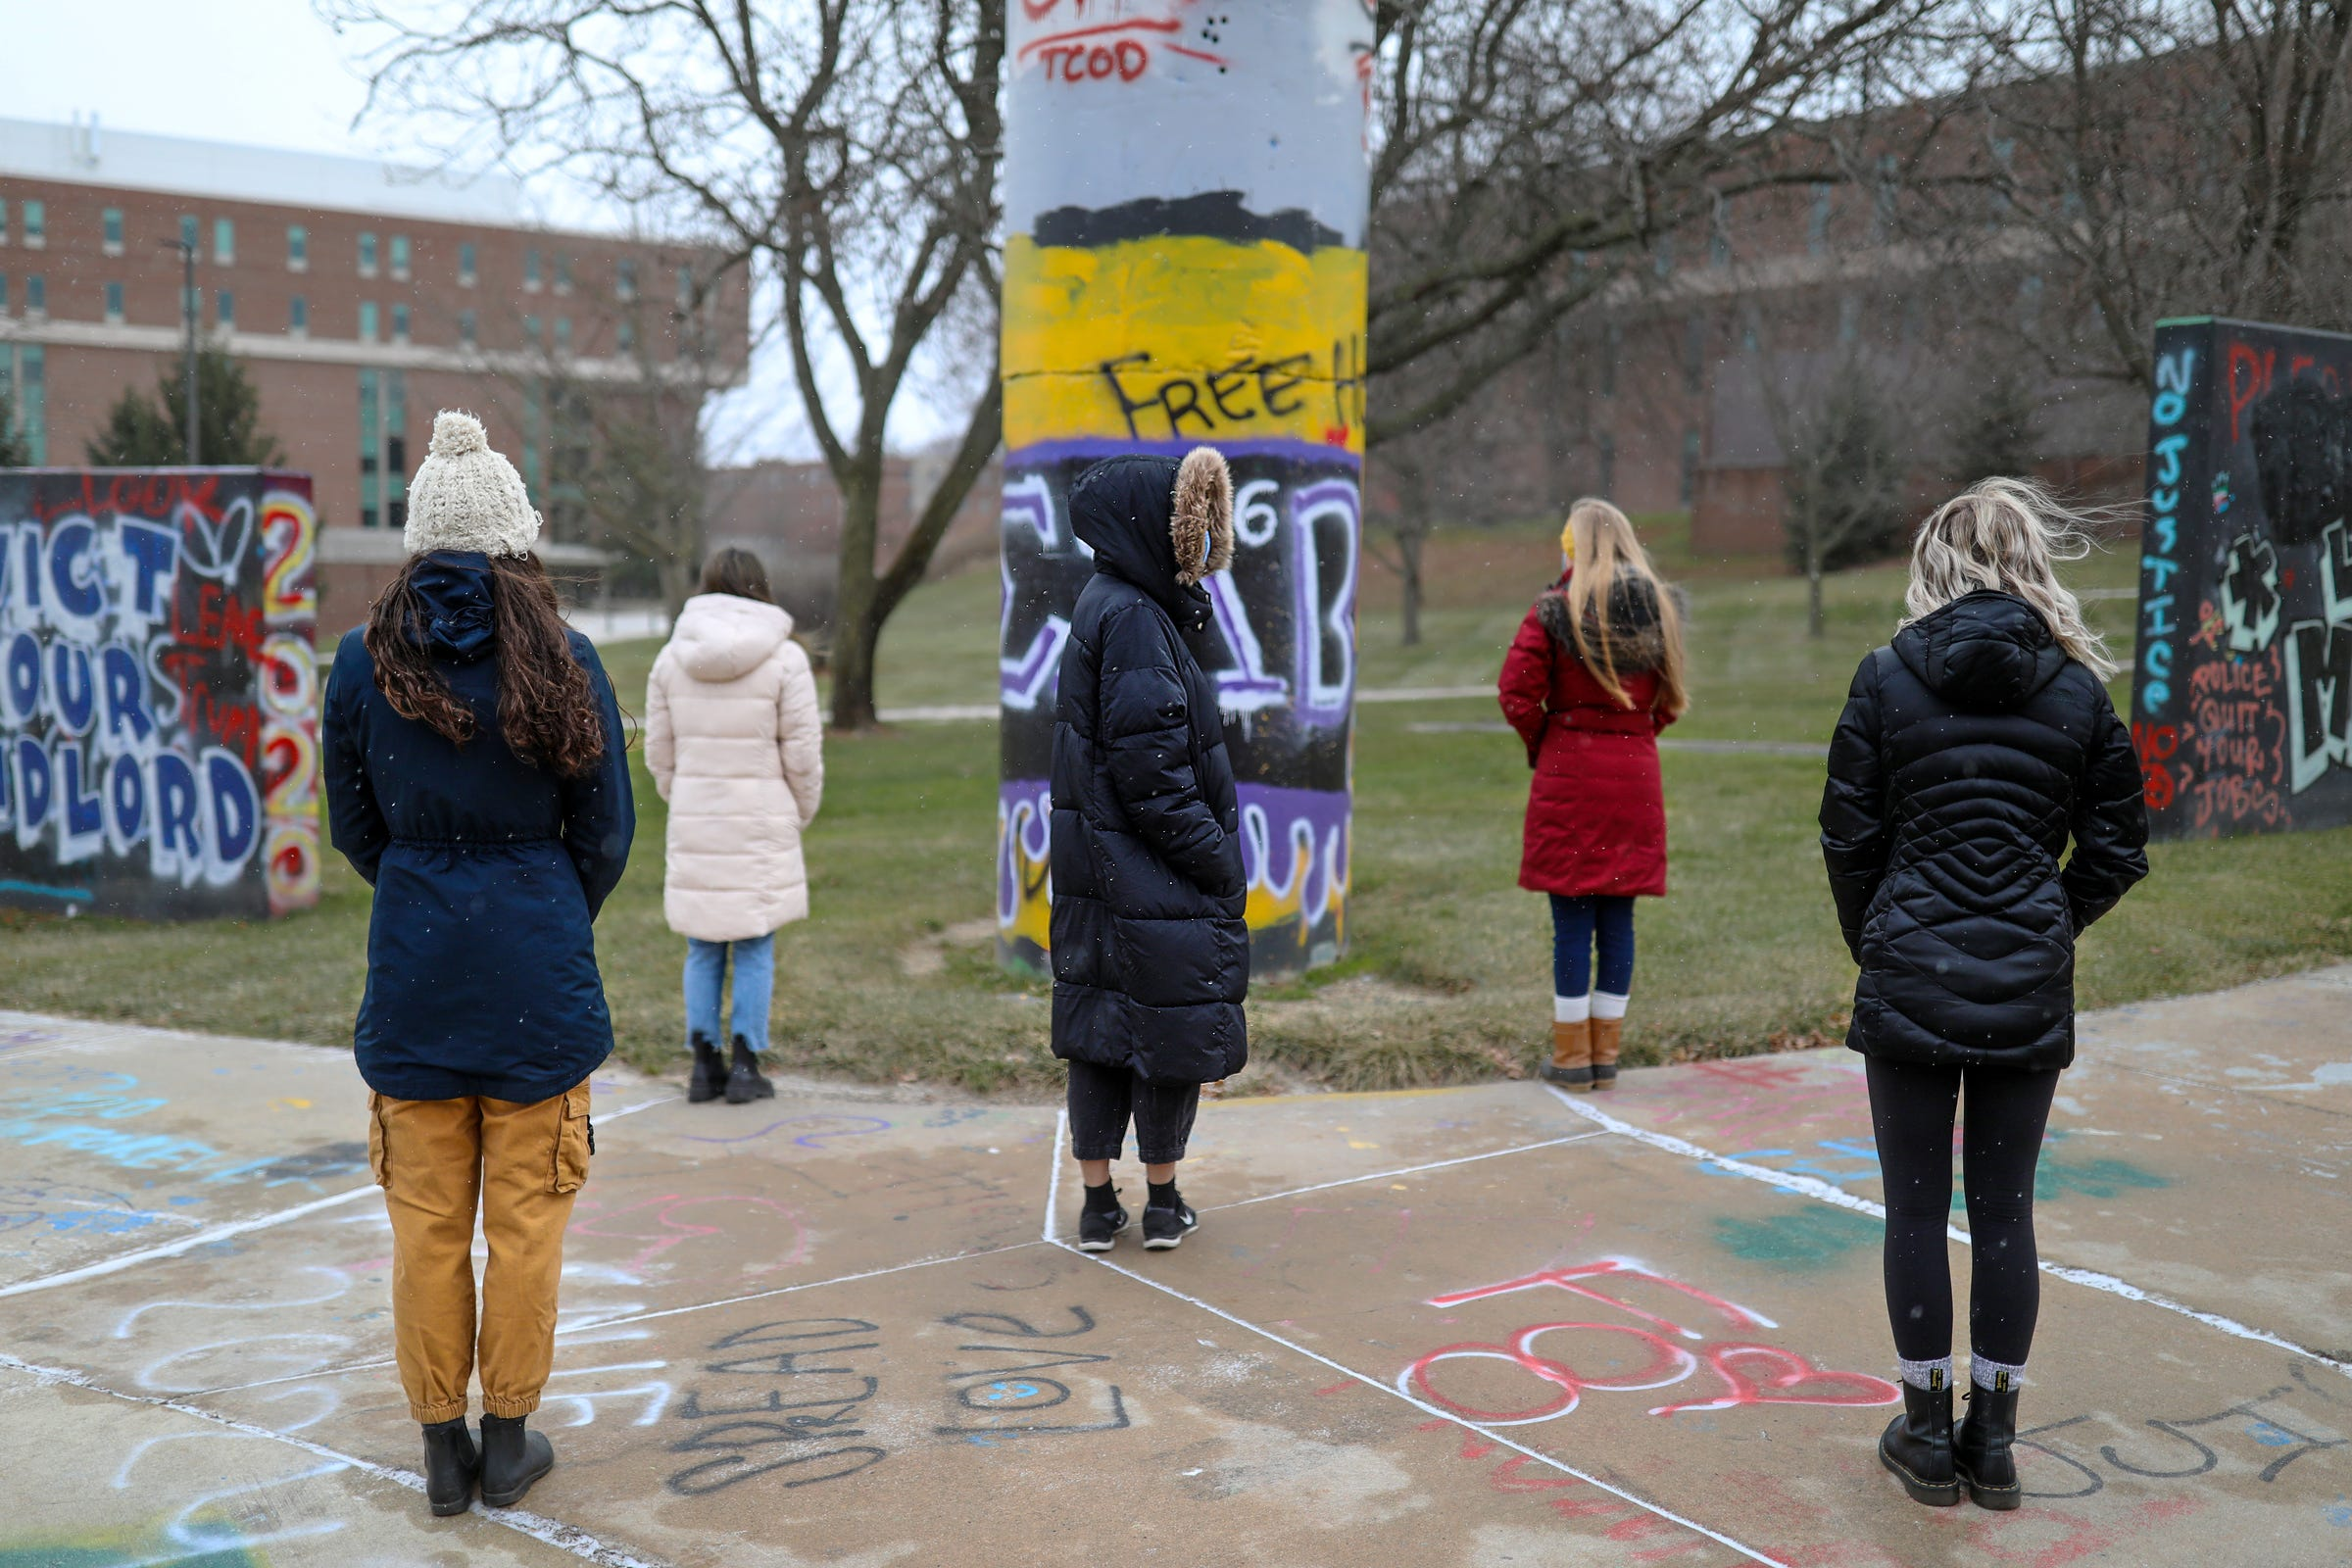 Five women, who came forward to testify about the sexual assault they experienced, now lean on one another for support and are photographed on the Eastern Michigan University campus on Wednesday, Dec. 16, 2020.